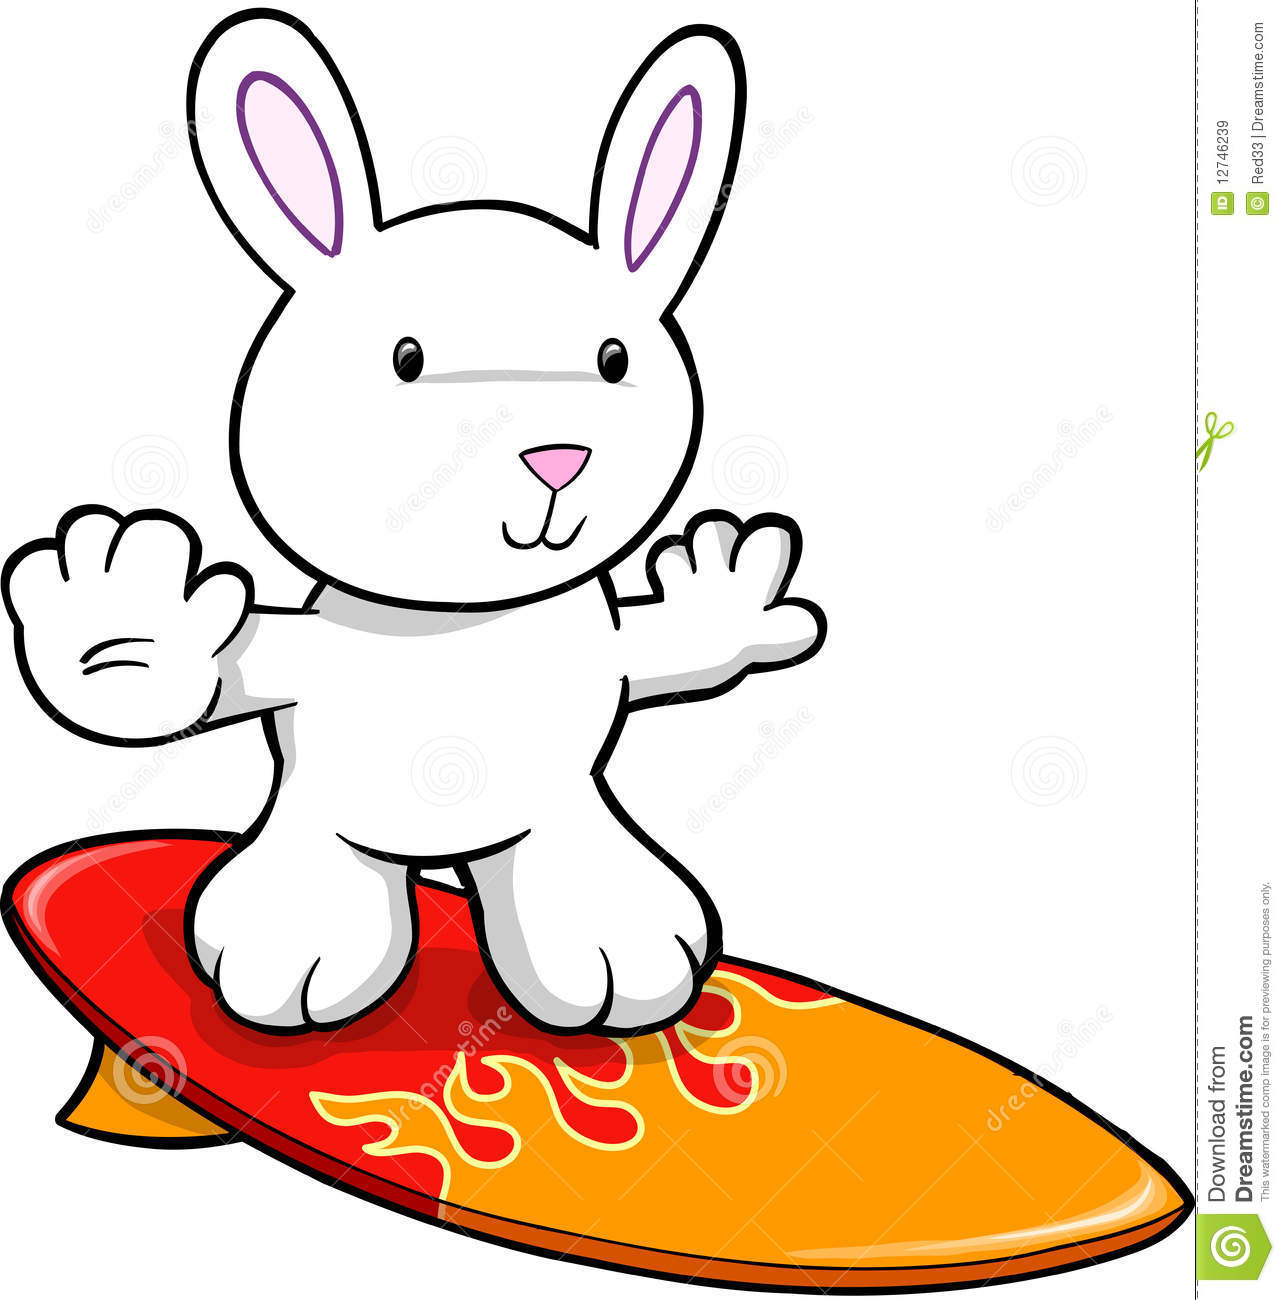 Easter Bunny Rabbit Surfing Royalty Free Stock Images.